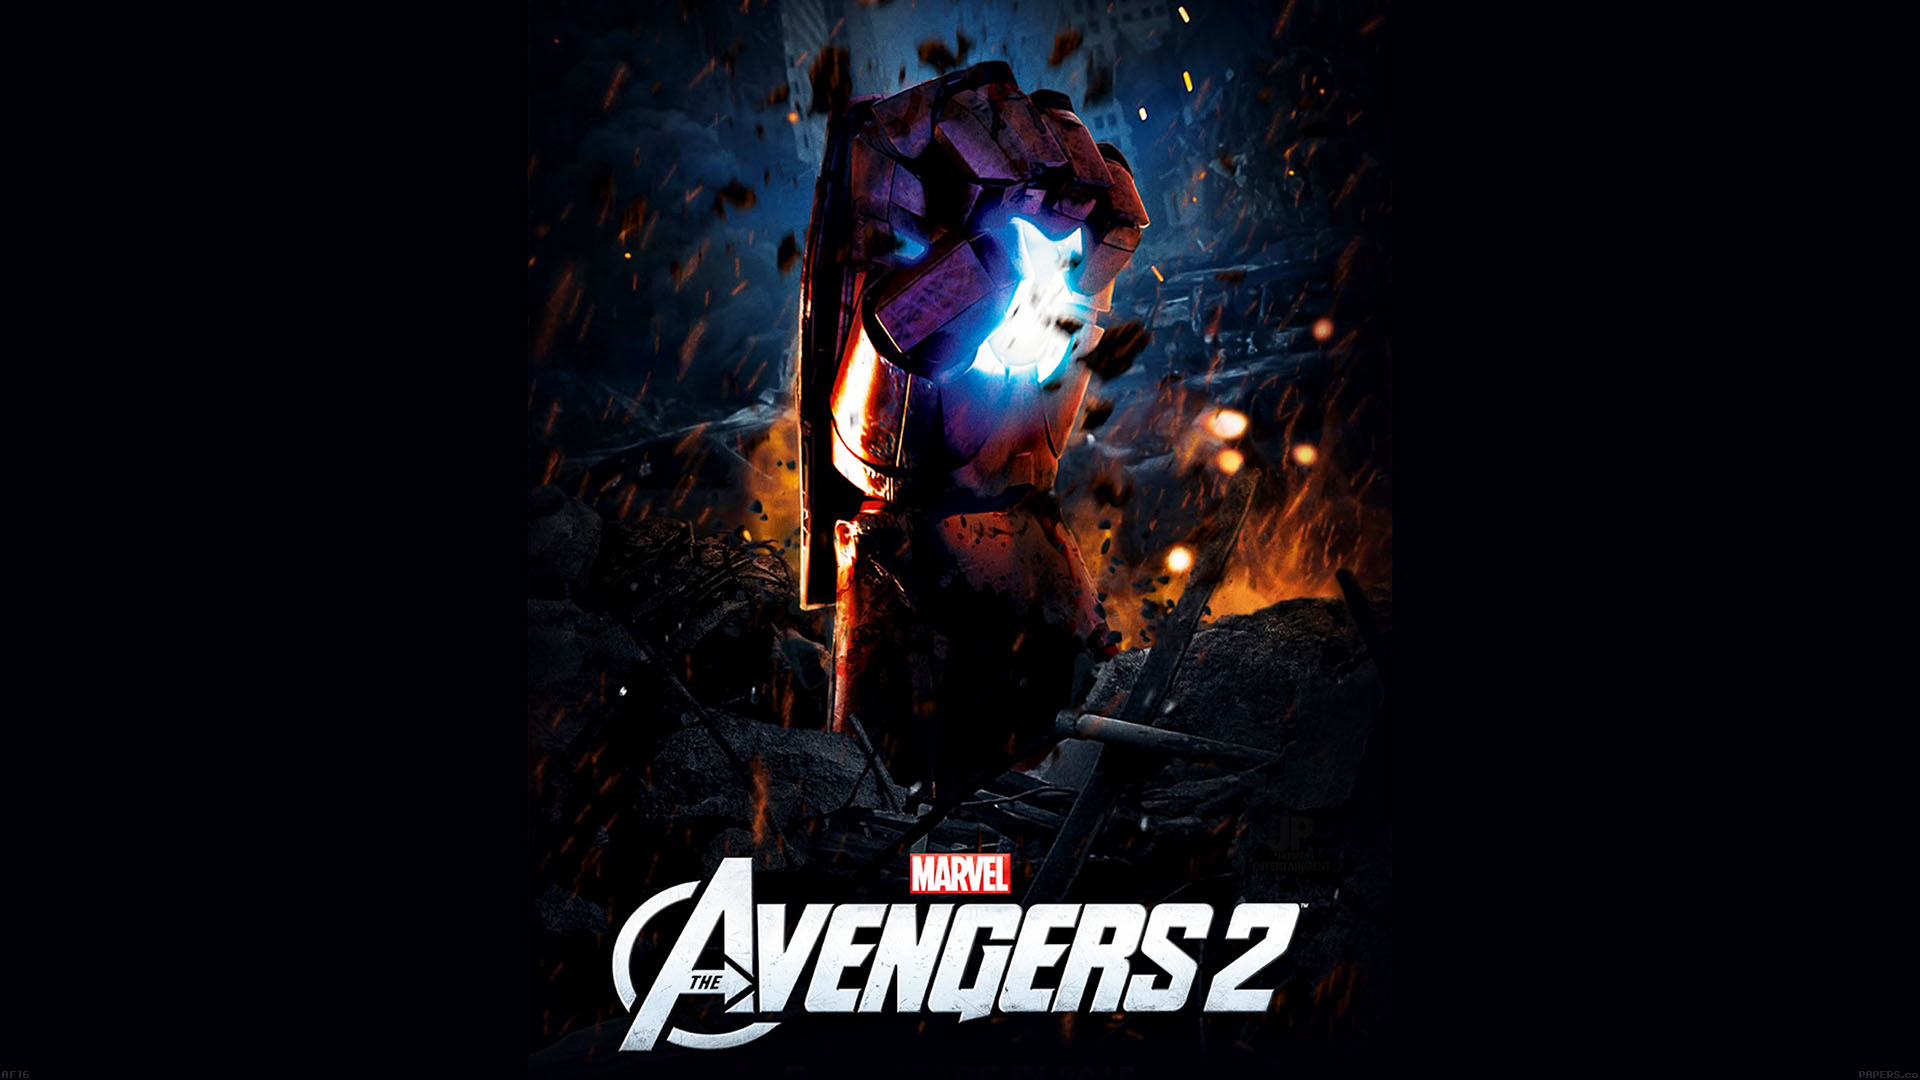 4k Fall Wallpaper For Phone Af16 Avengers 2 Poster Hollywood Film Poster Papers Co